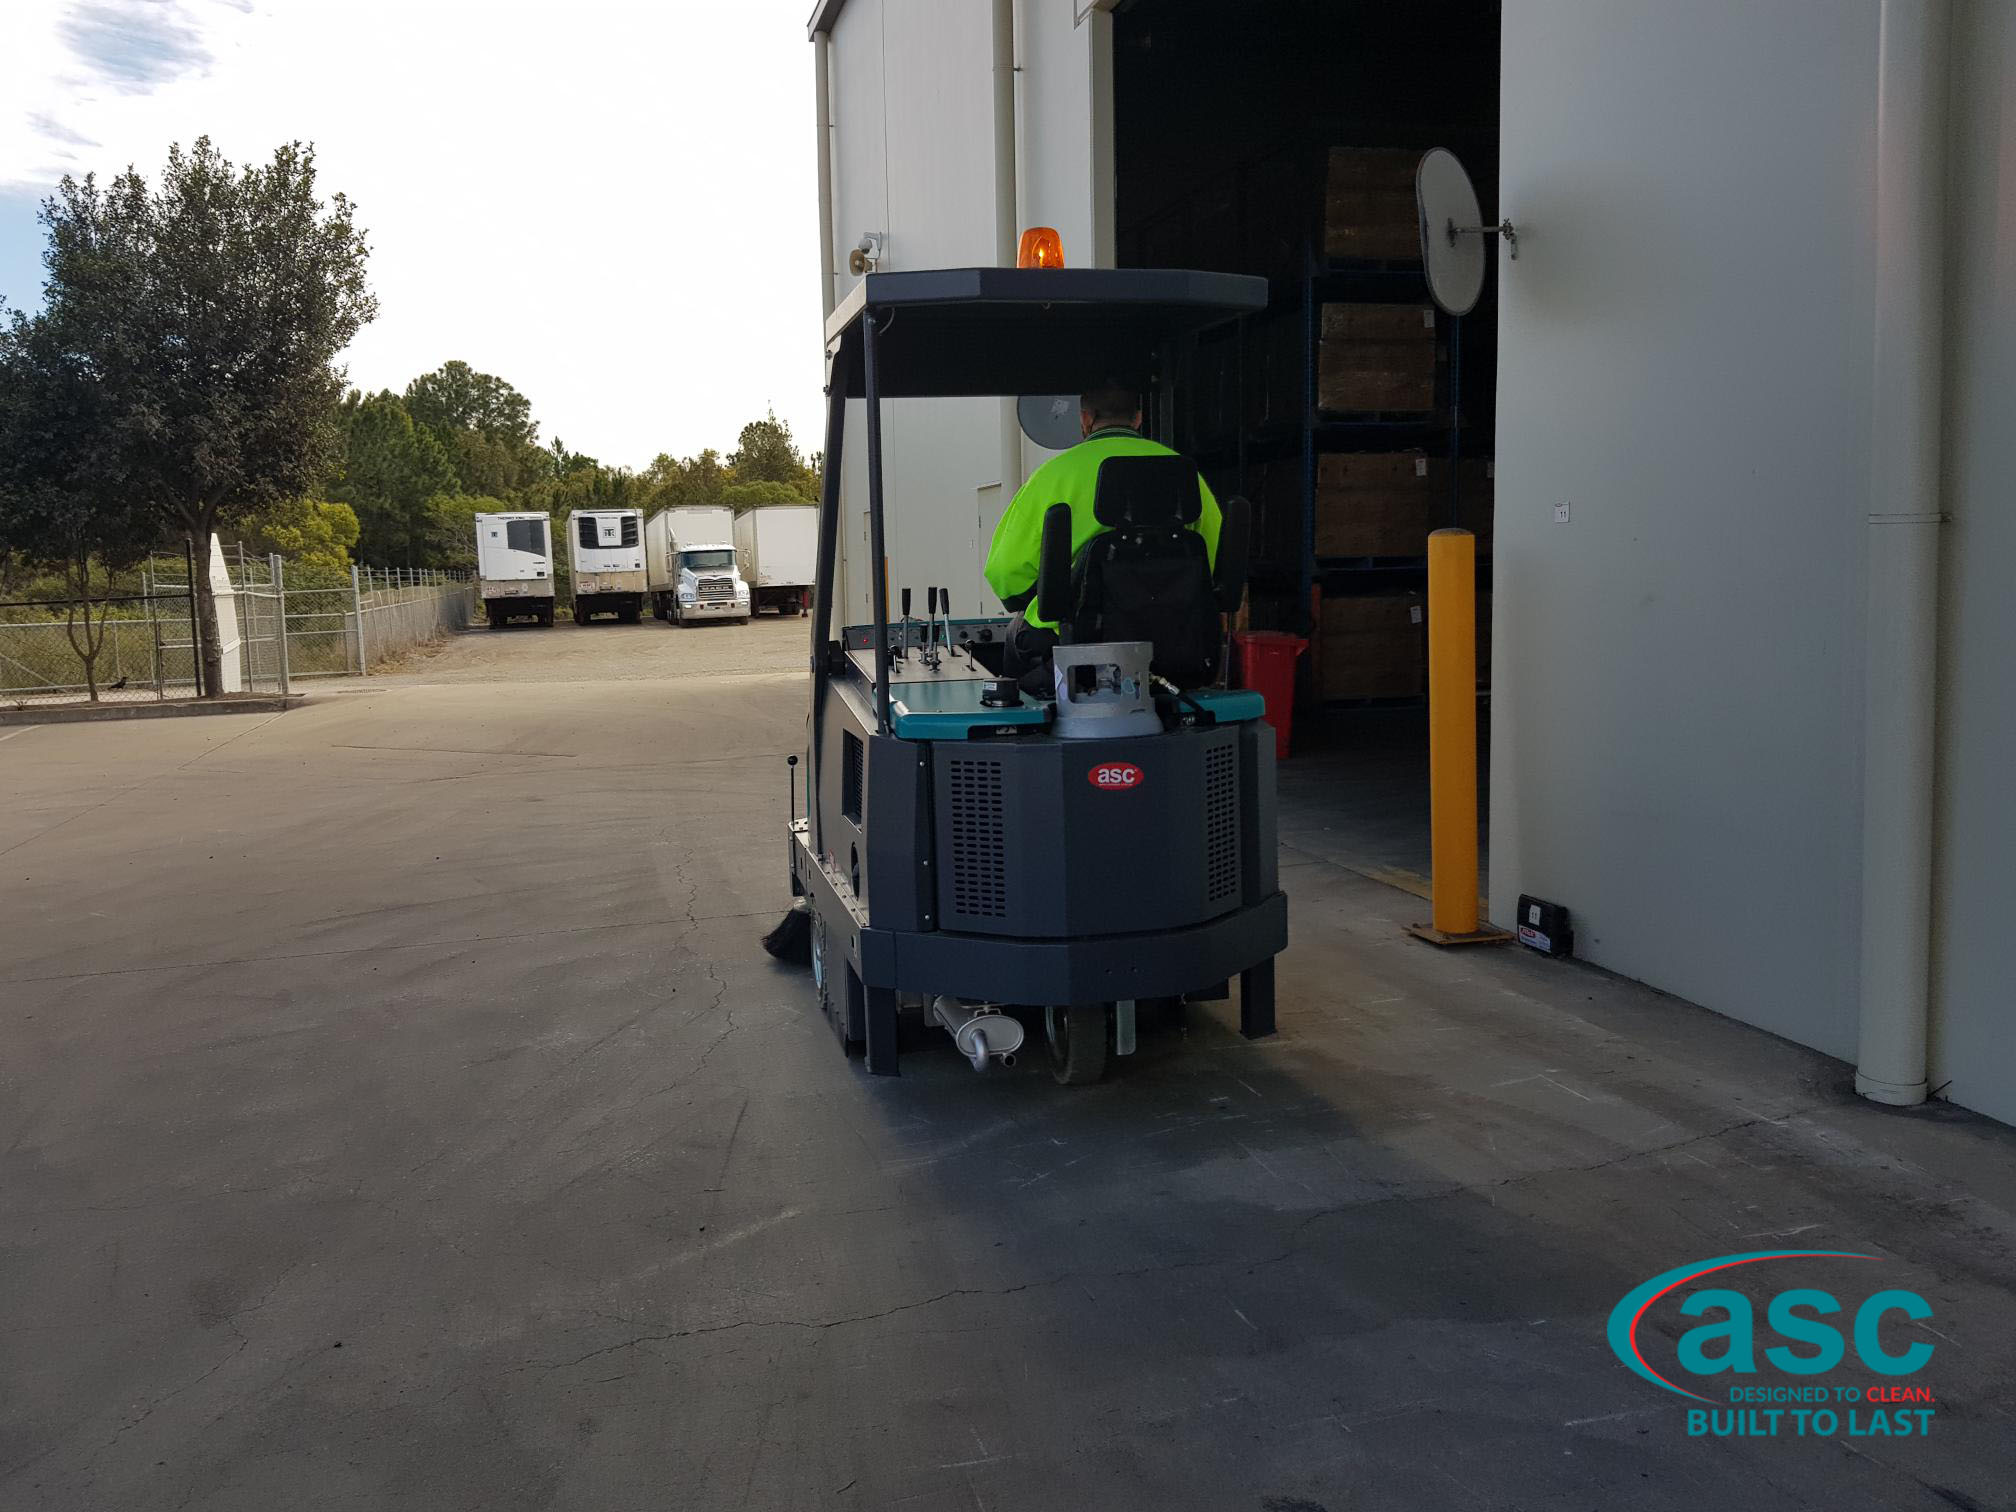 ASC Eureka Mach 6 At CDM Logistic's Warehouse